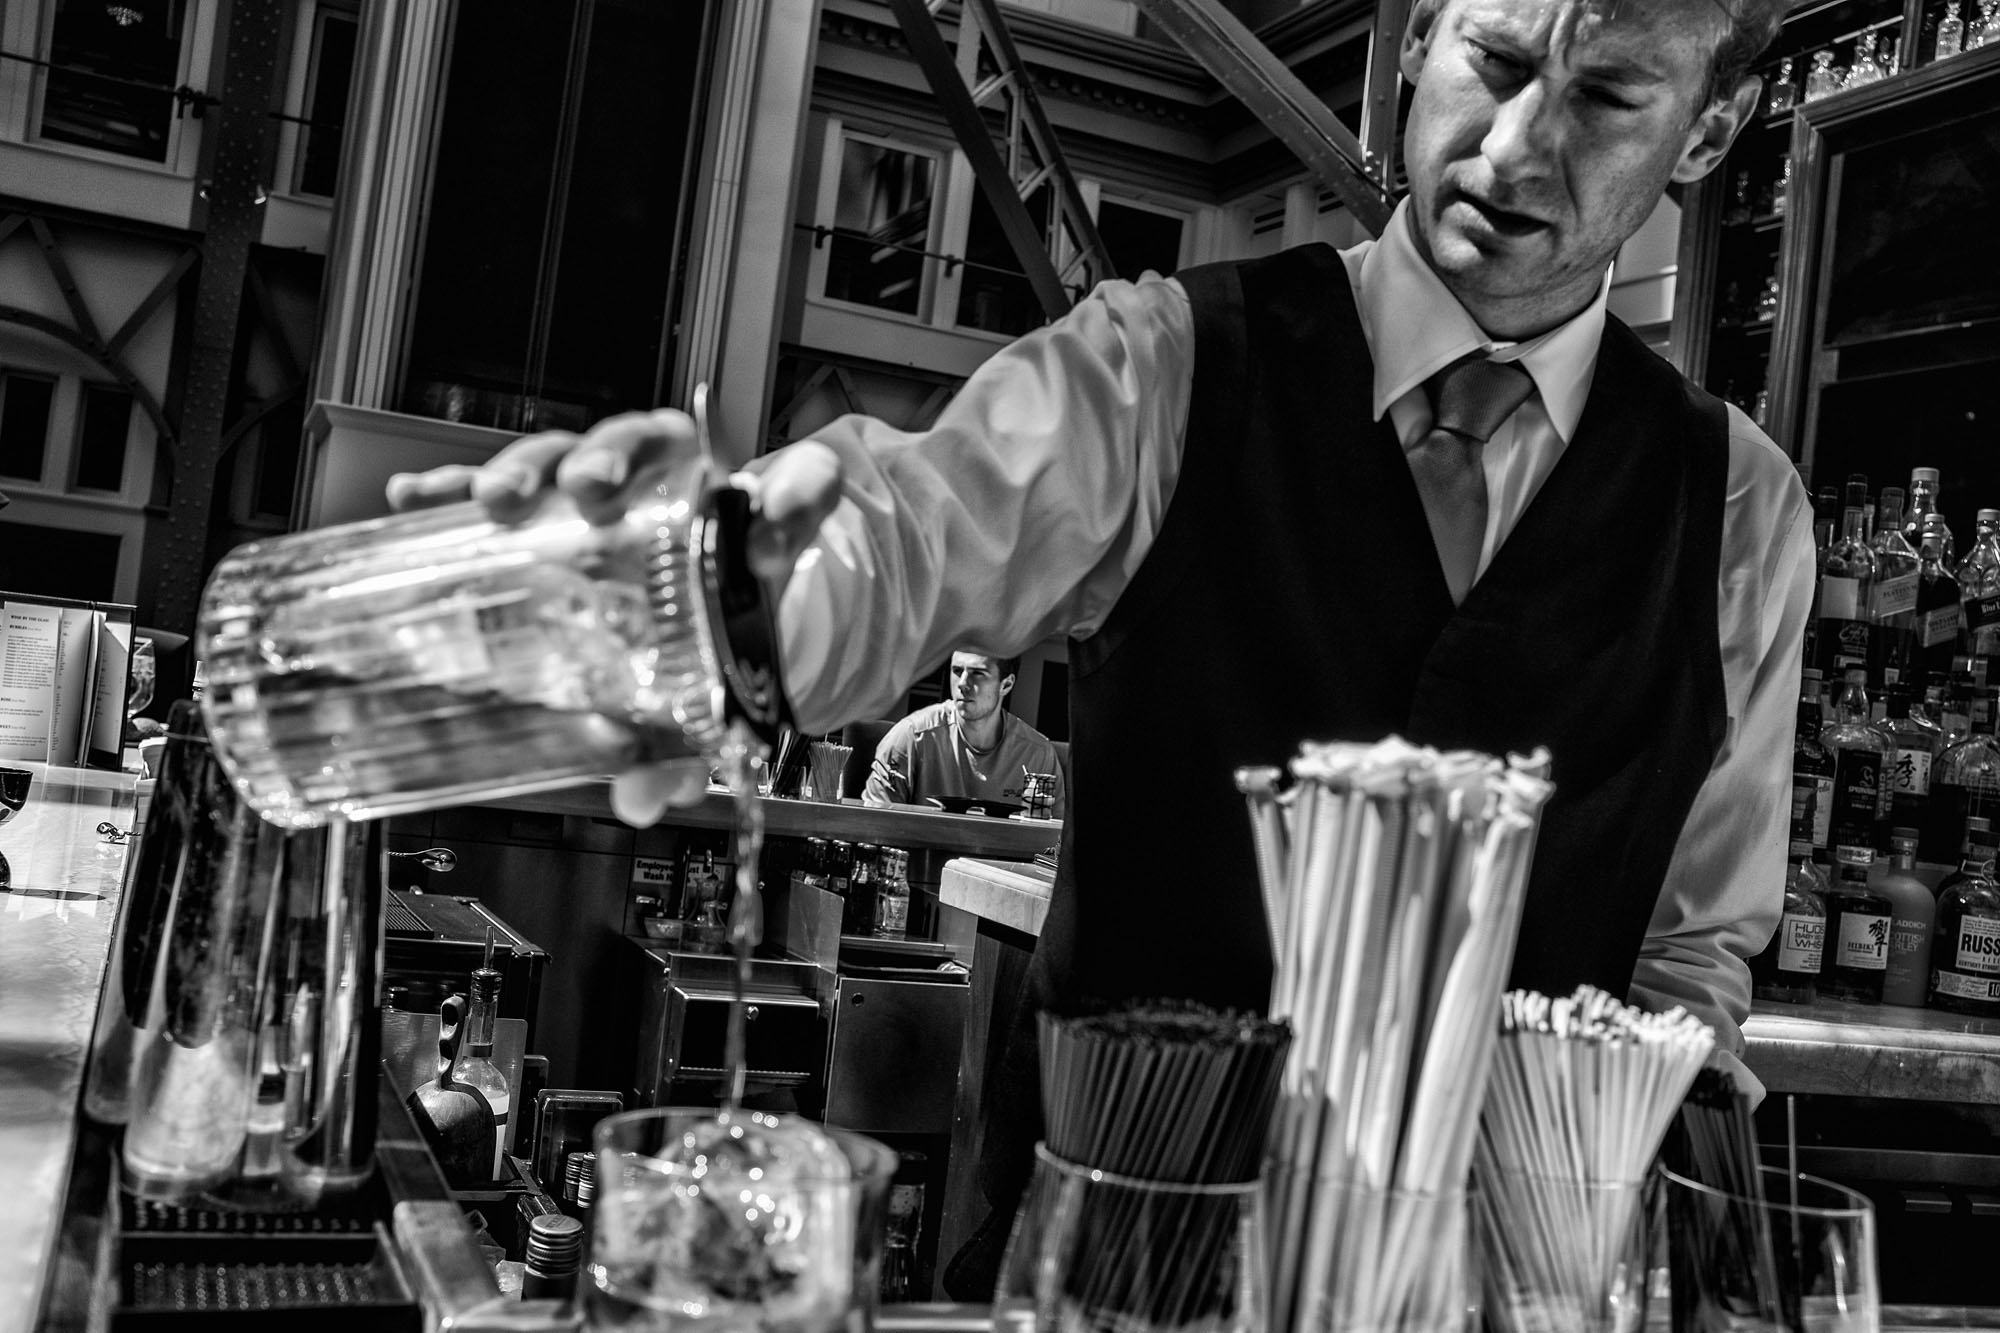 A bartender pours a drink at the Benjamin Bar & Lounge, located in the Trump International Hotel on March 29, 2017.